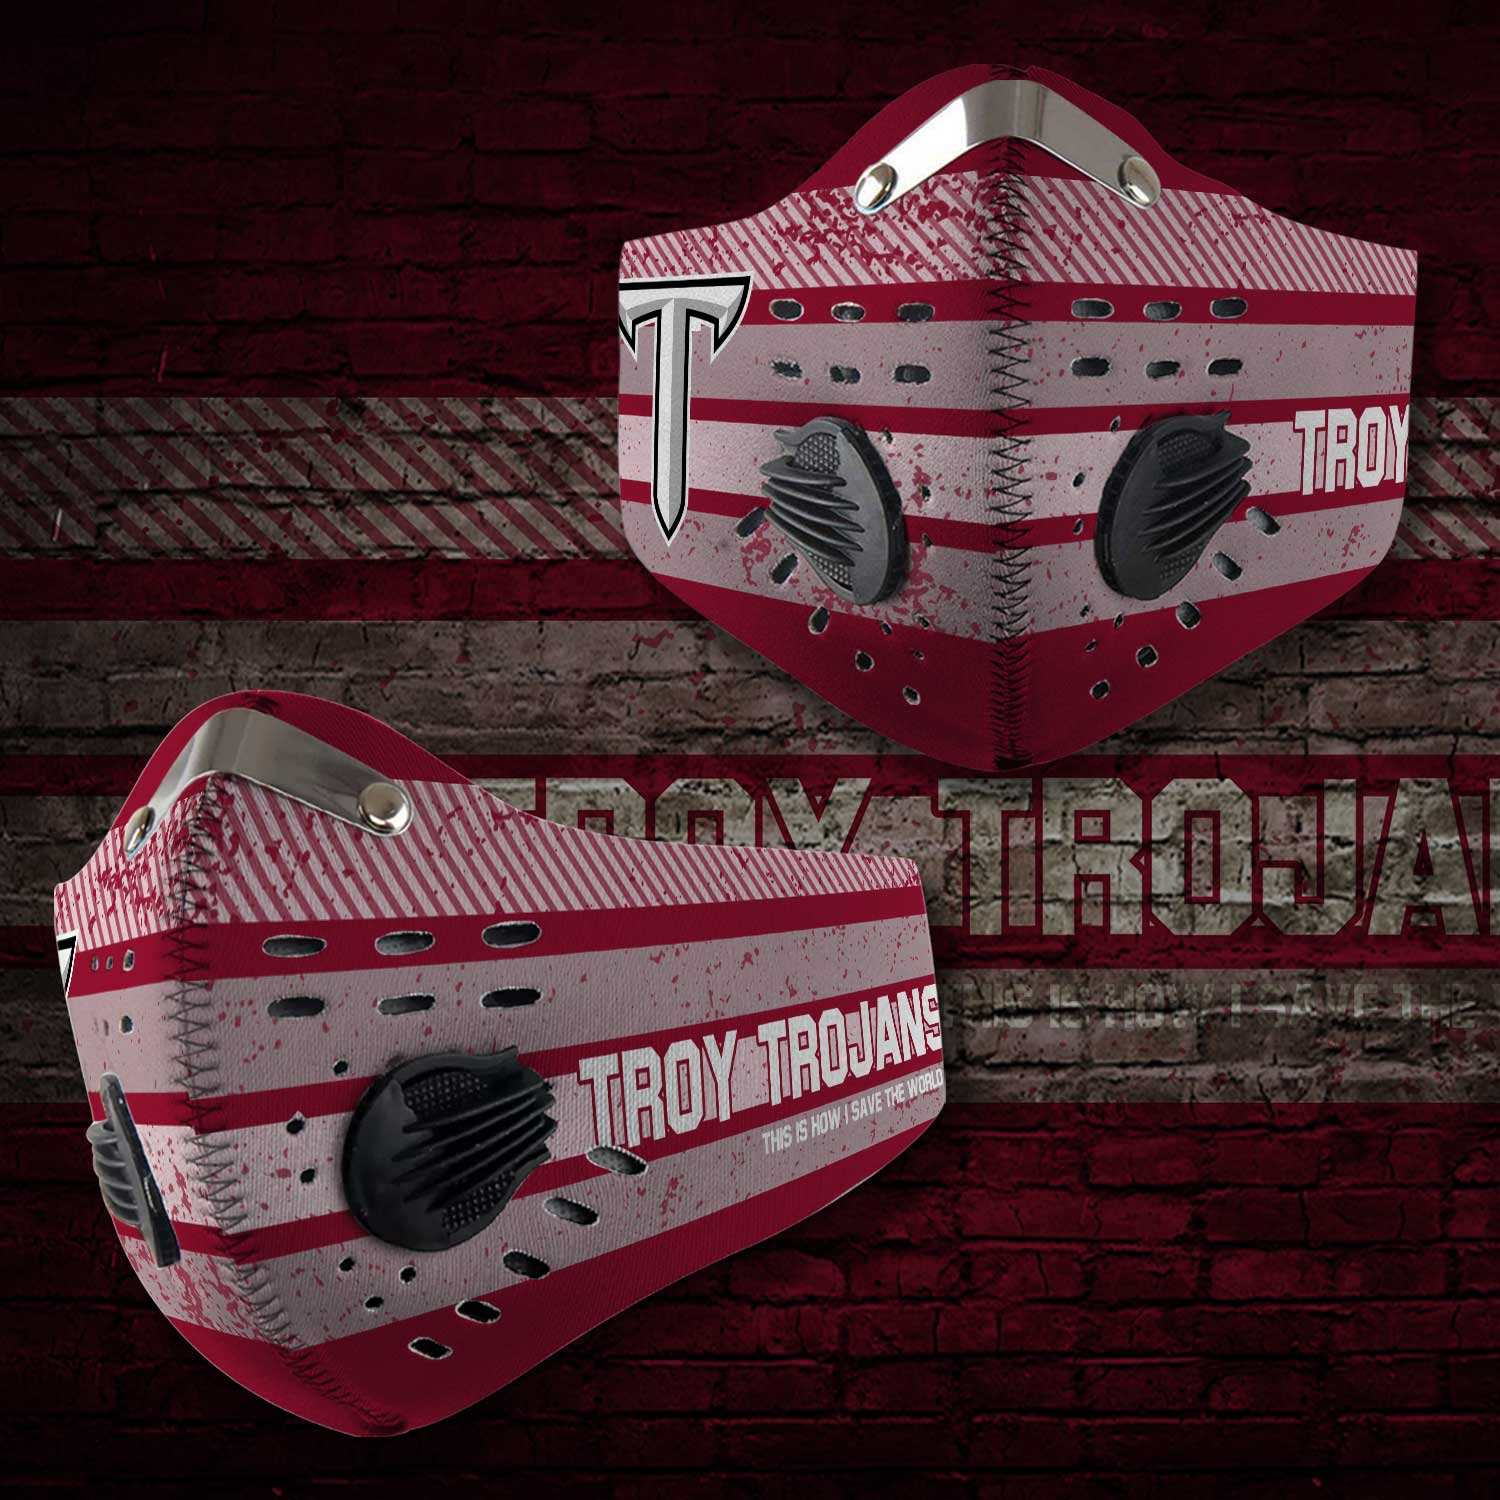 Troy trojans this is how i save the world carbon filter face mask 2